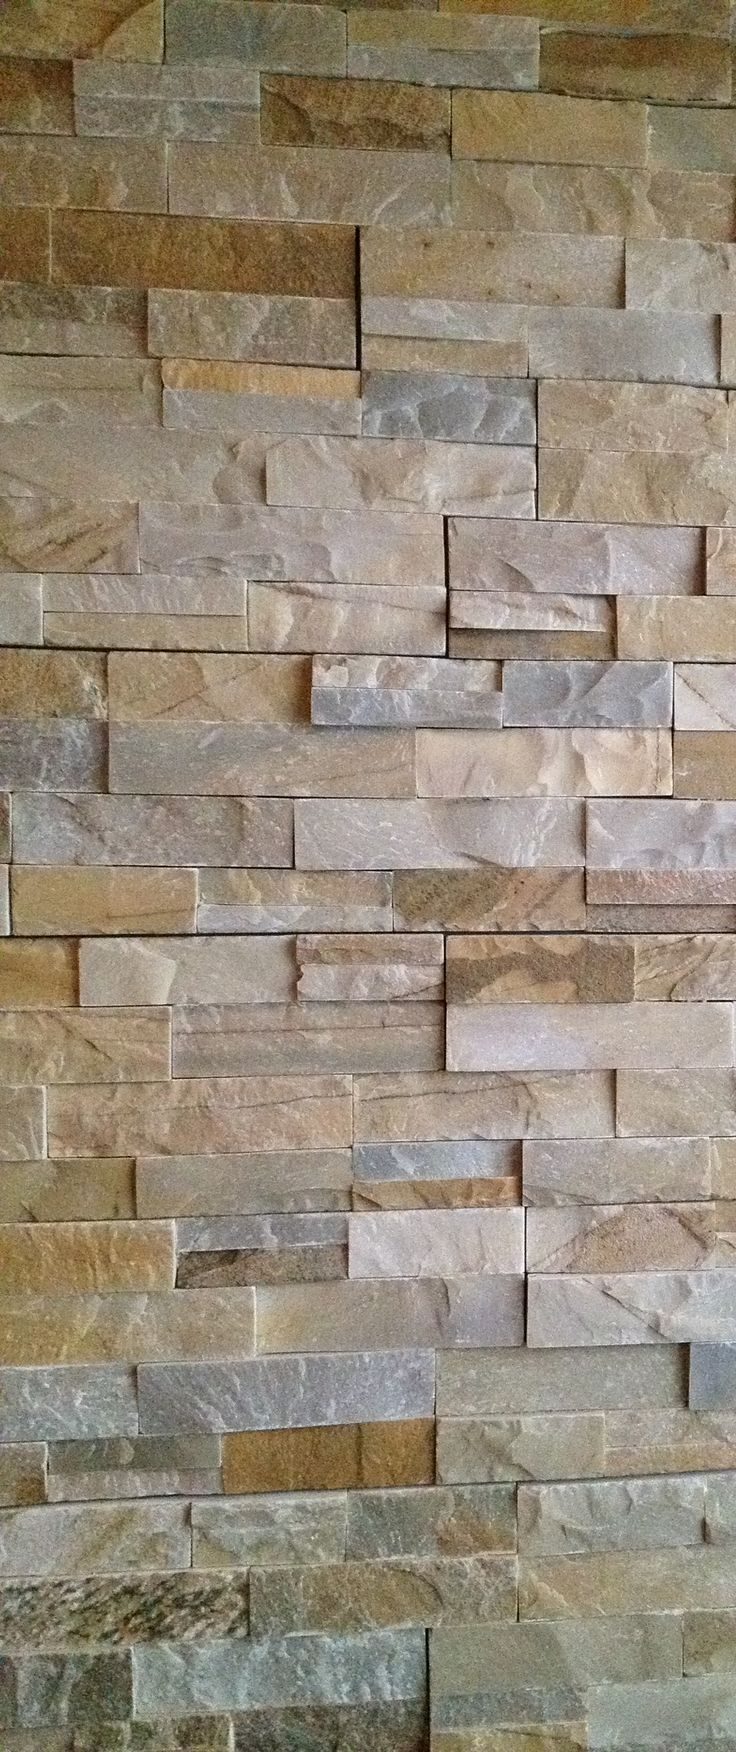 Pin By Interior Projects At Lowe S On Projects To Try